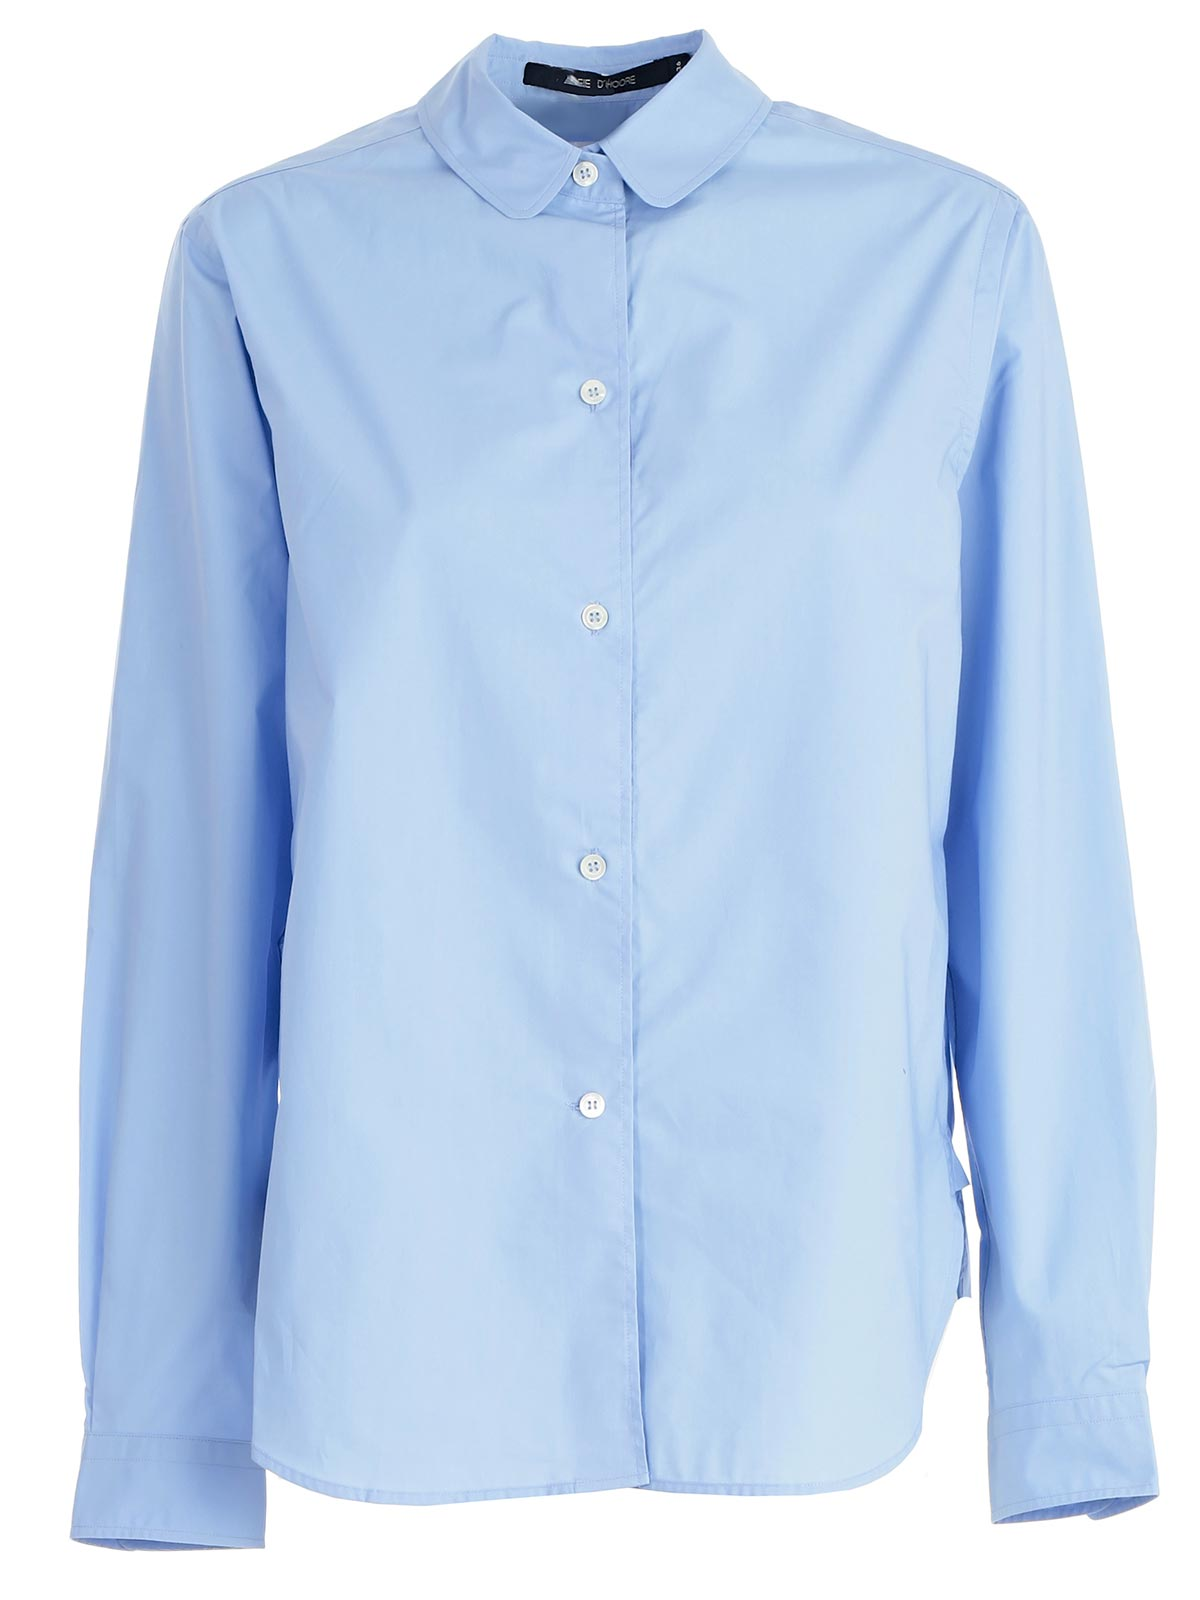 Picture of Sofie D'hoore Shirt